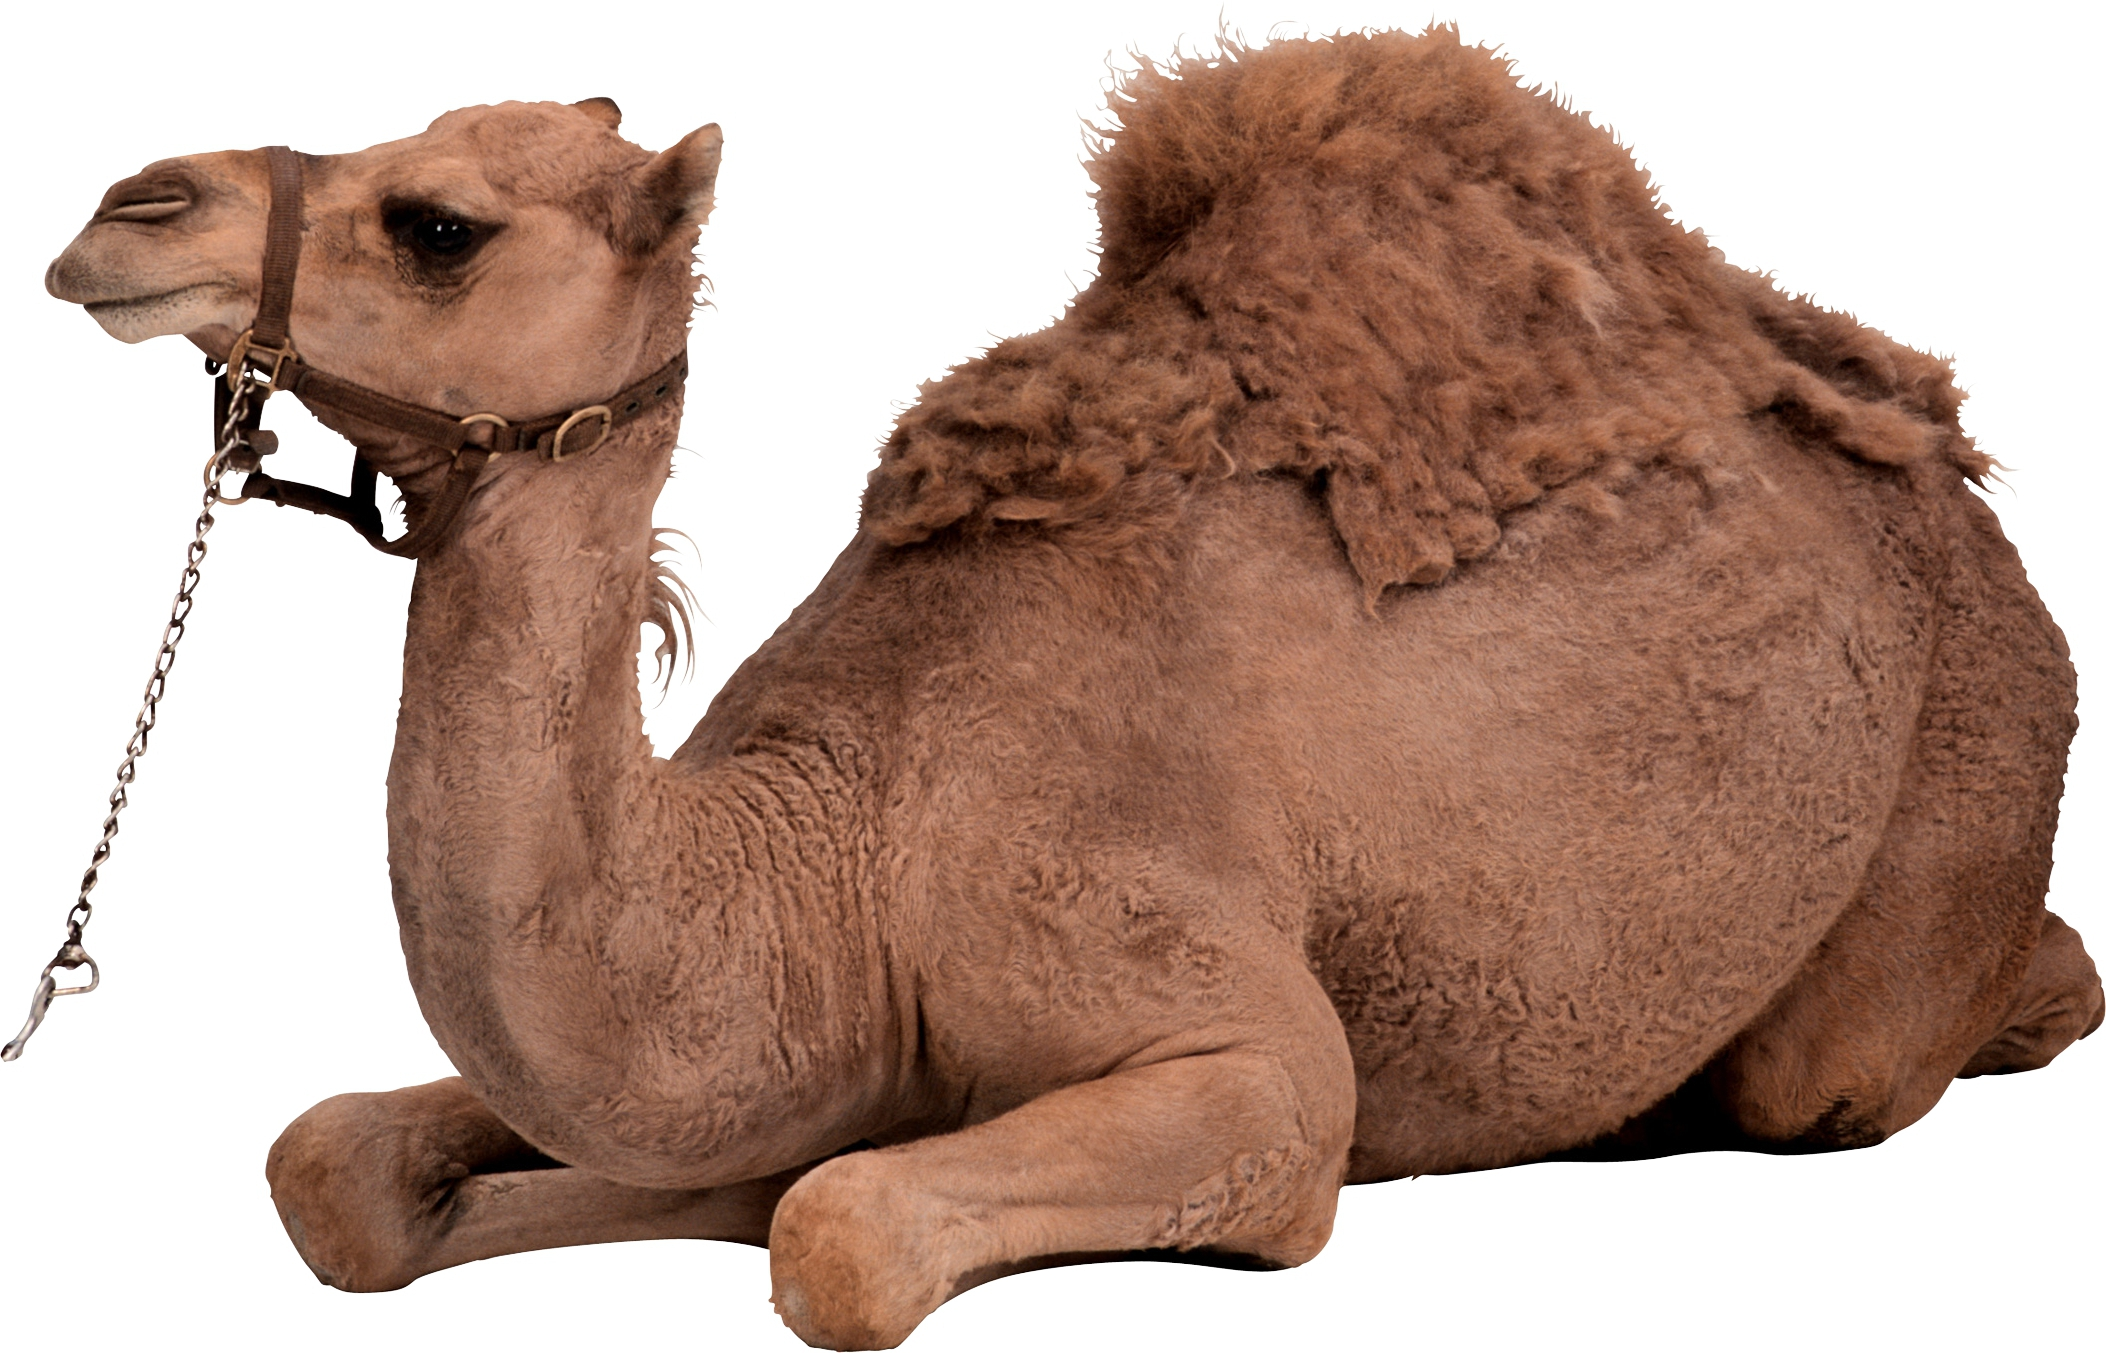 Camel High Definition Wallpapers